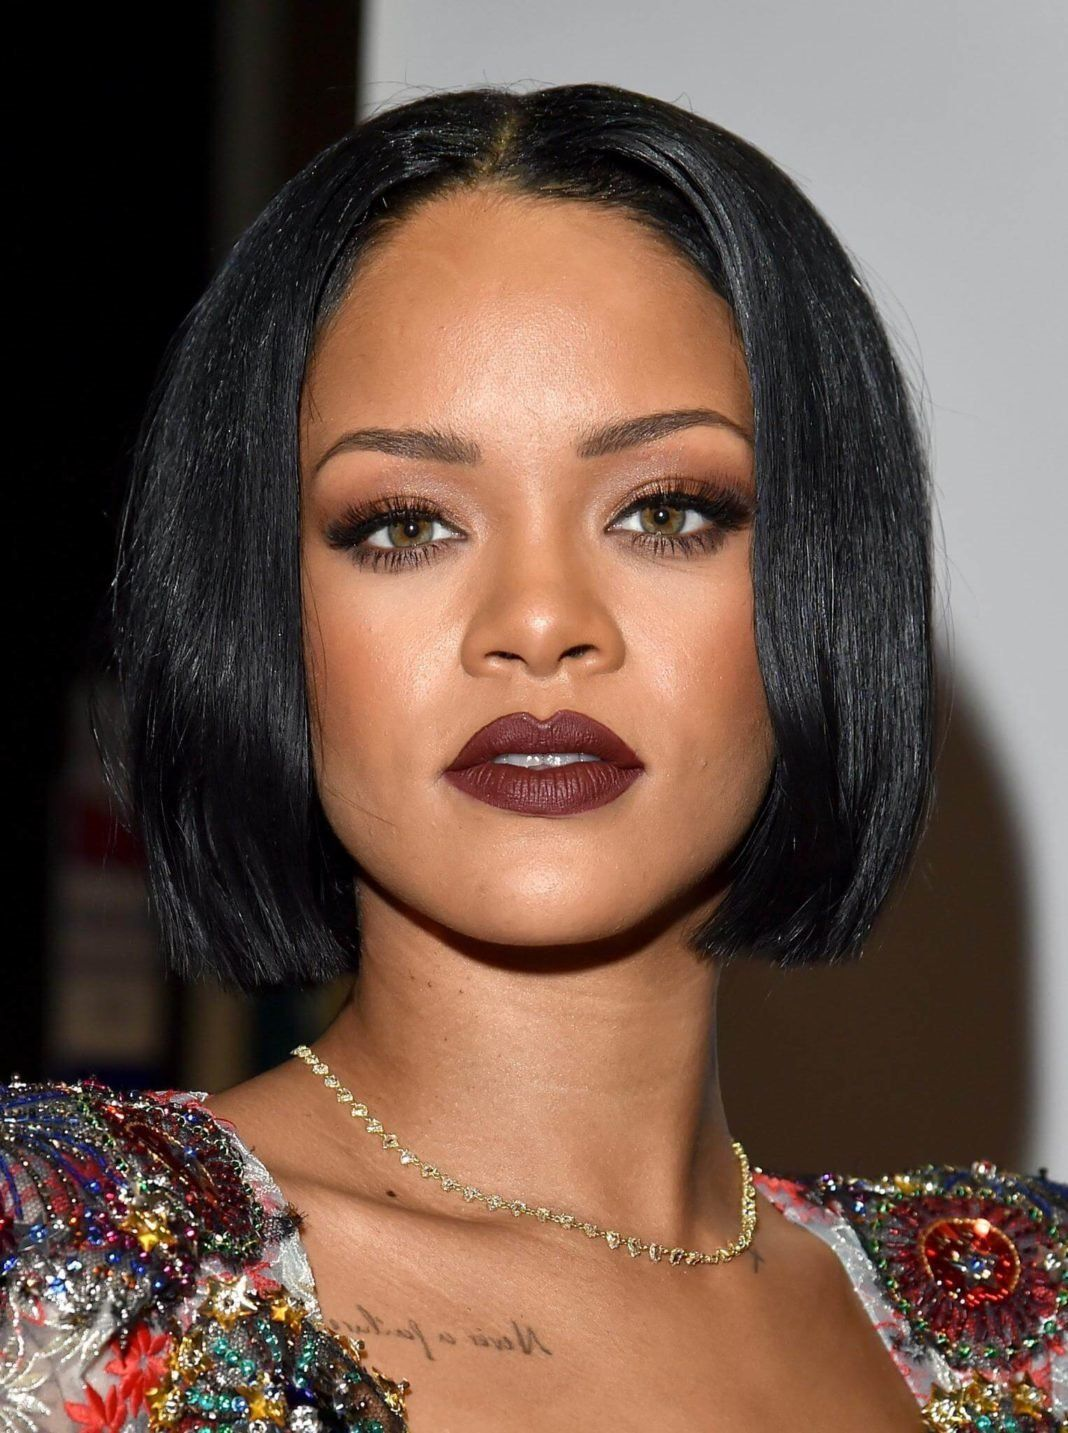 15 Blunt Bob Haircuts Hairstyles That Are Timeless With A Twist Rihanna Hairstyles Rihanna Short Hair Short Hair Styles